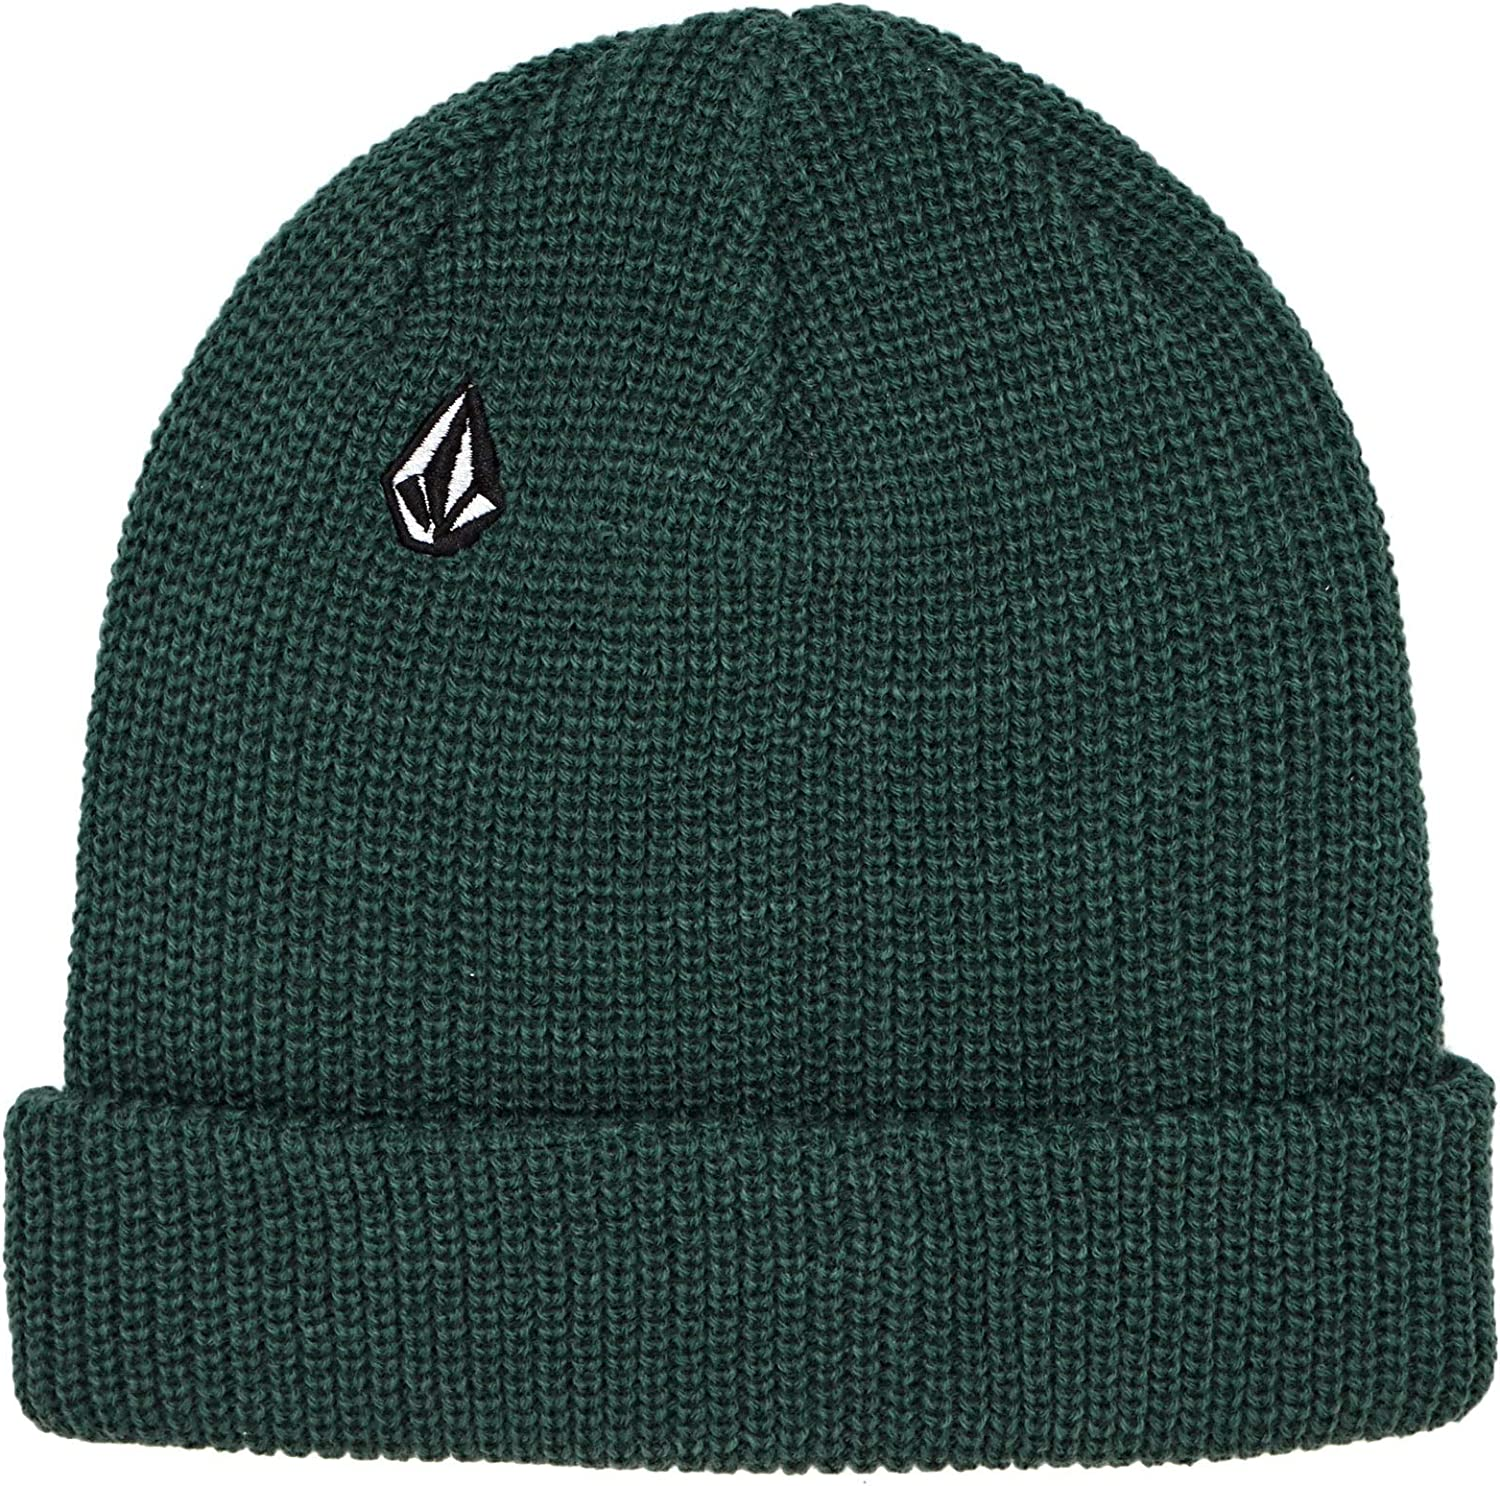 New Volcom Men/'s Full Stone Beanie Soft Acrylic Blue